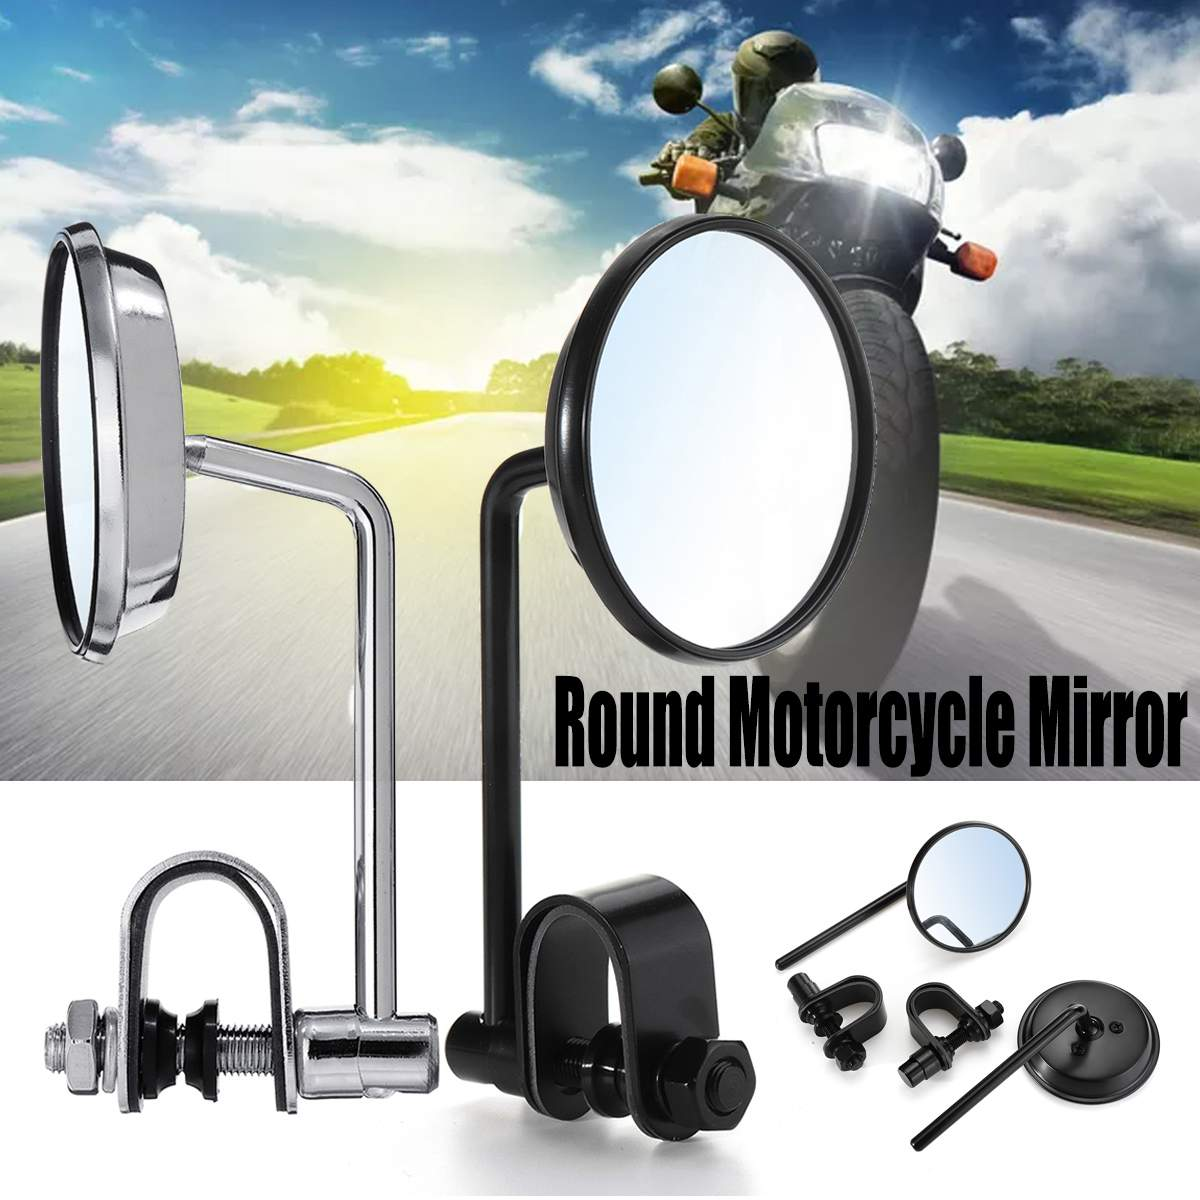 Round Motorcycle Mirror Chrome Black 22/25mm Handlebar Retro Motorcycle Mirrors Universal Motorbike Side Mirror Left & RightRound Motorcycle Mirror Chrome Black 22/25mm Handlebar Retro Motorcycle Mirrors Universal Motorbike Side Mirror Left & Right